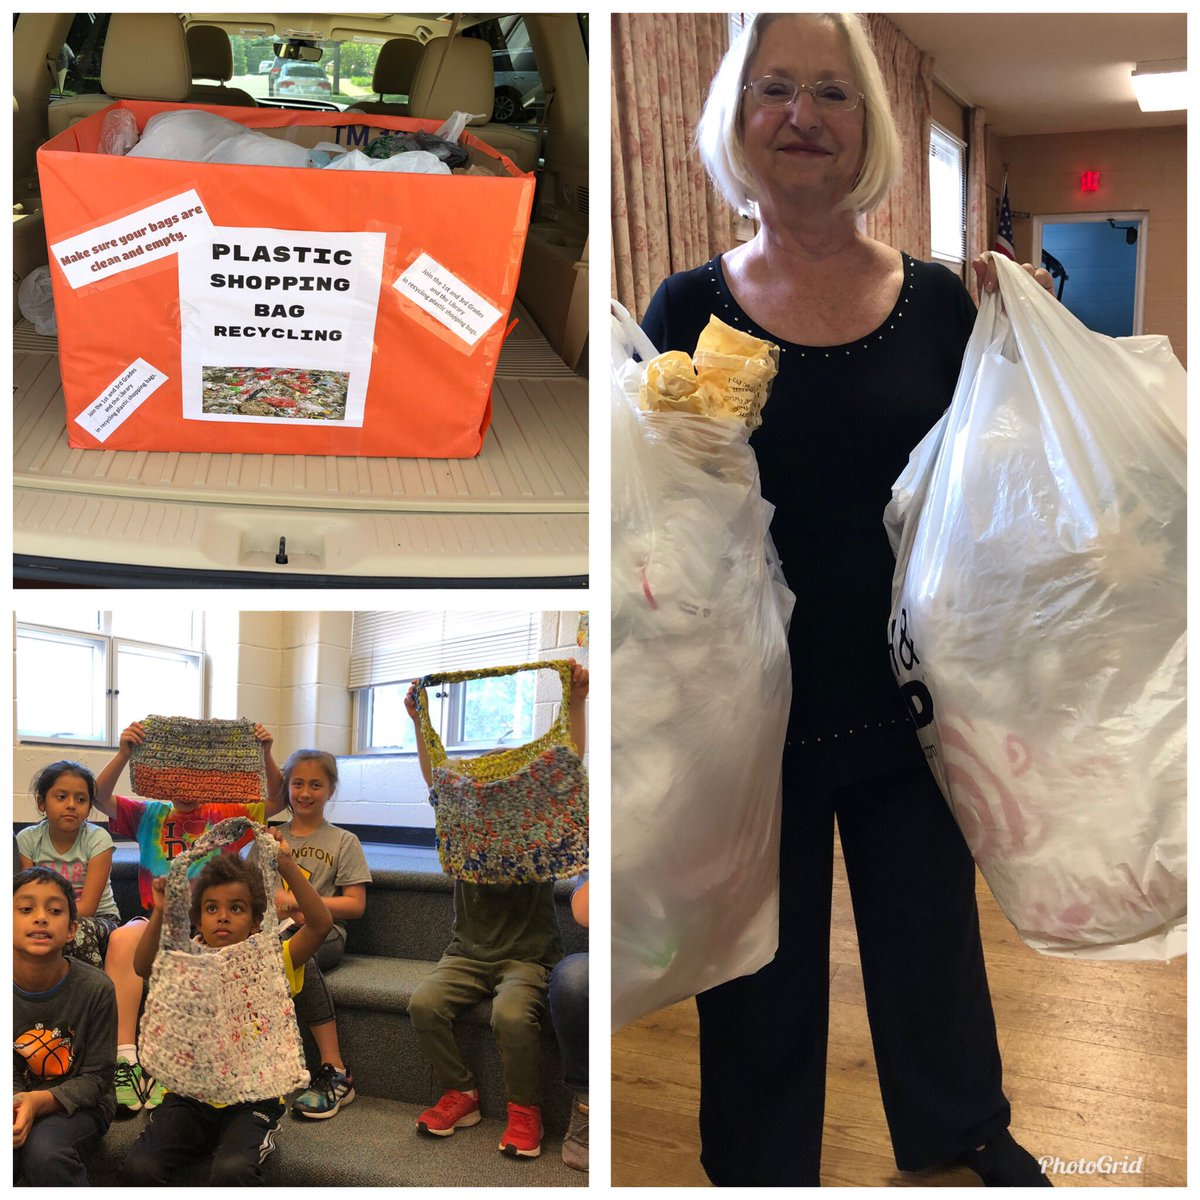 Women's Club of Arlington &amp; Barcroft Library partnered to teach recycling of plastic shopping bags. <a target='_blank' href='http://twitter.com/BarcroftEagles'>@BarcroftEagles</a> collected used bags for the Club who make carryalls &amp; sleeping mats for ASPAN. <a target='_blank' href='http://search.twitter.com/search?q=APSGetInvolved'><a target='_blank' href='https://twitter.com/hashtag/APSGetInvolved?src=hash'>#APSGetInvolved</a></a> <a target='_blank' href='http://twitter.com/APSVirginia'>@APSVirginia</a>  <a target='_blank' href='http://twitter.com/APSLibrarians'>@APSLibrarians</a> <a target='_blank' href='http://twitter.com/GabyRivasAPS'>@GabyRivasAPS</a> <a target='_blank' href='https://t.co/fozFLwr8Jk'>https://t.co/fozFLwr8Jk</a>